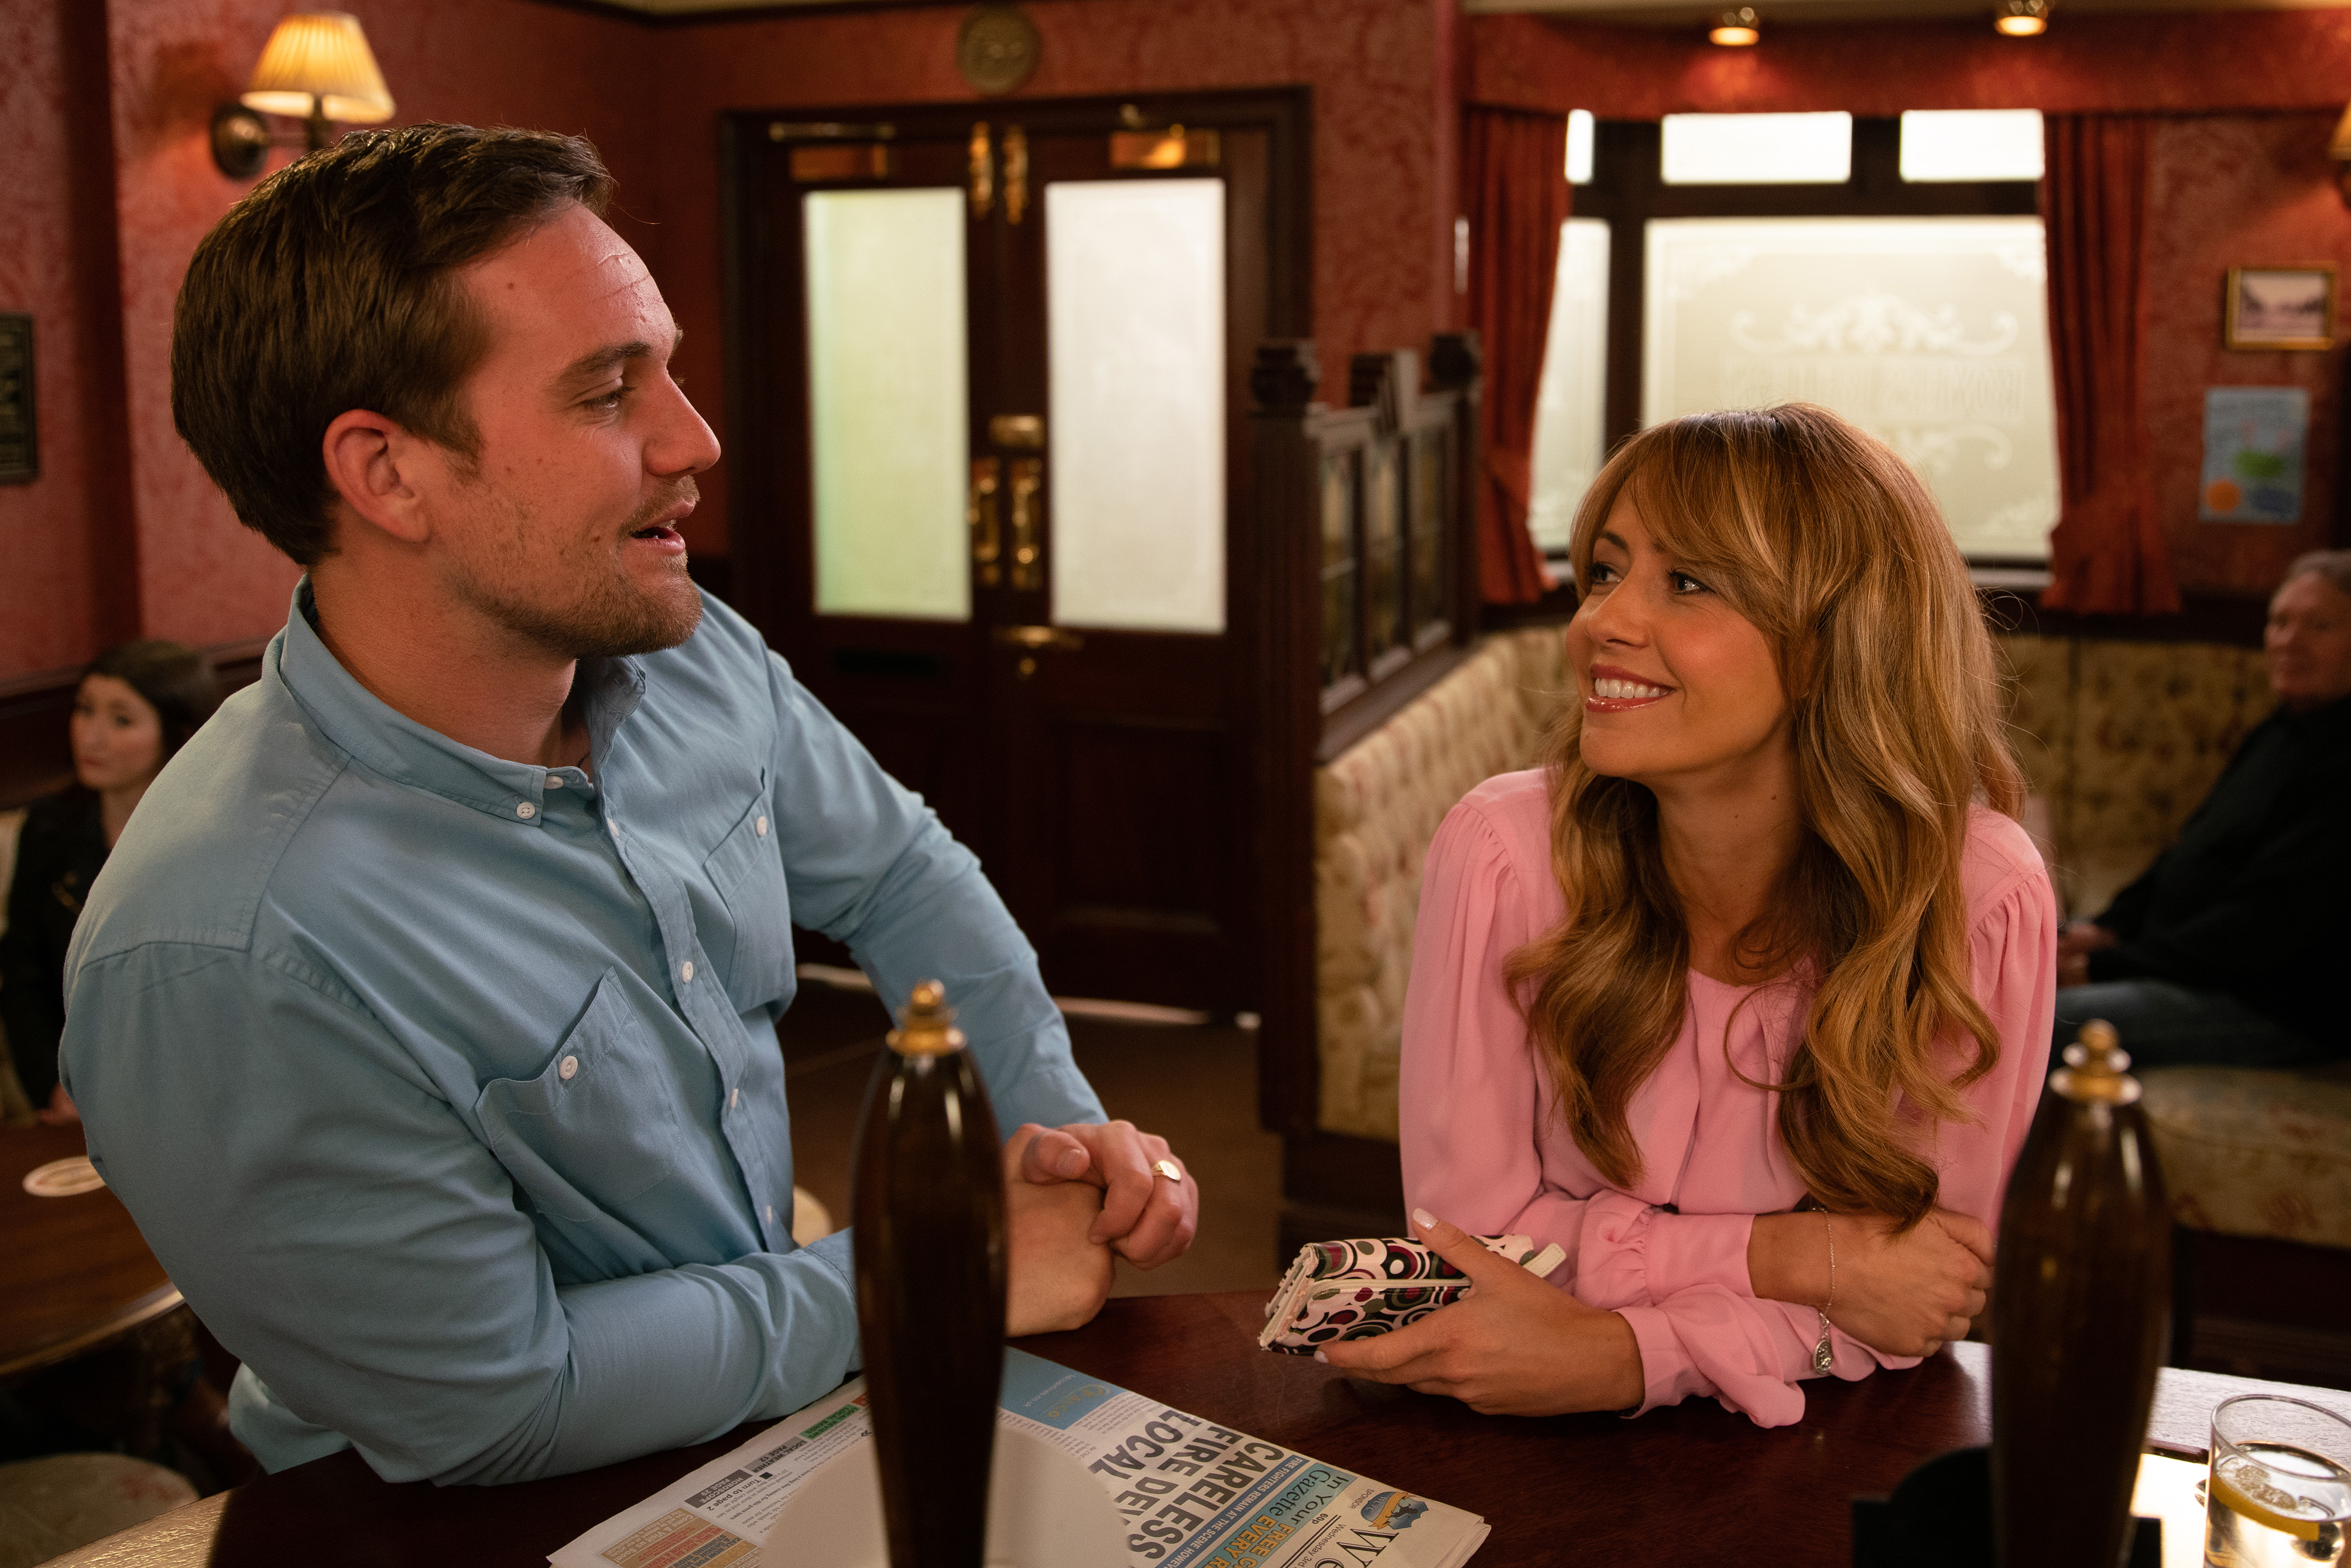 Coronation Street SPOILER: Romance for Ali and Maria?